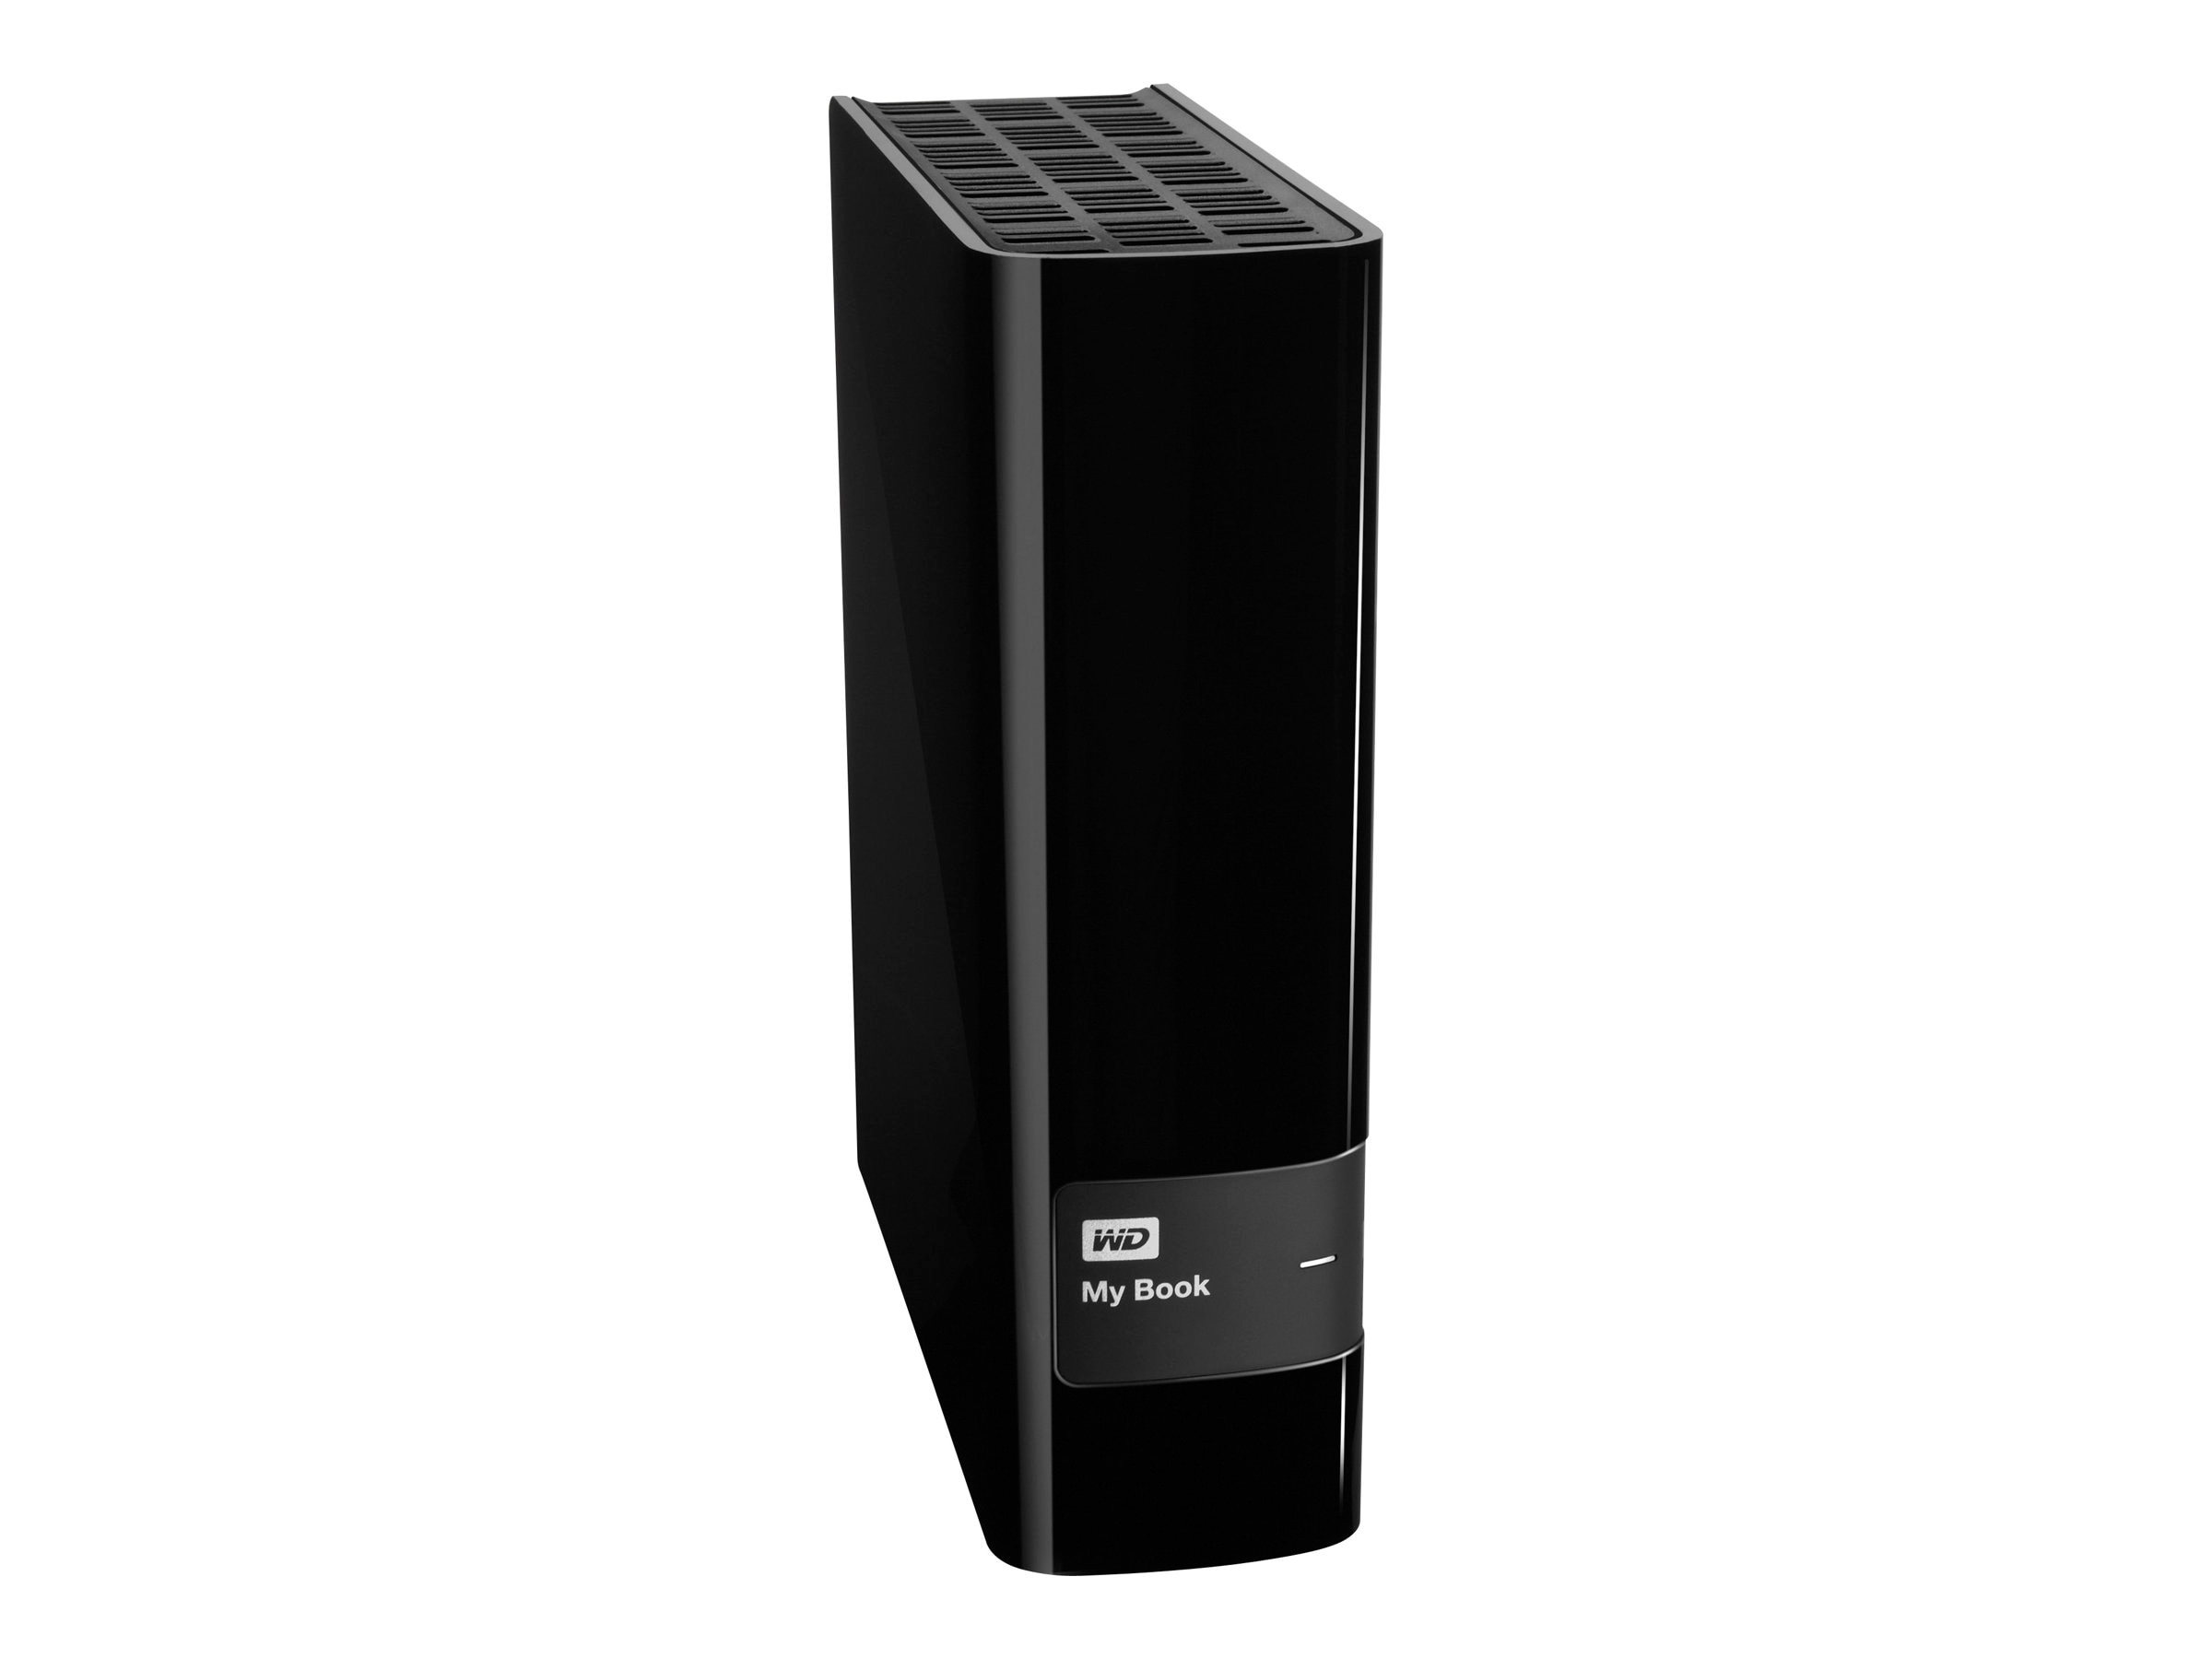 WD 2TB My Book Desktop USB 3.0 External Hard Drive, WDBFJK0020HBK-NESN